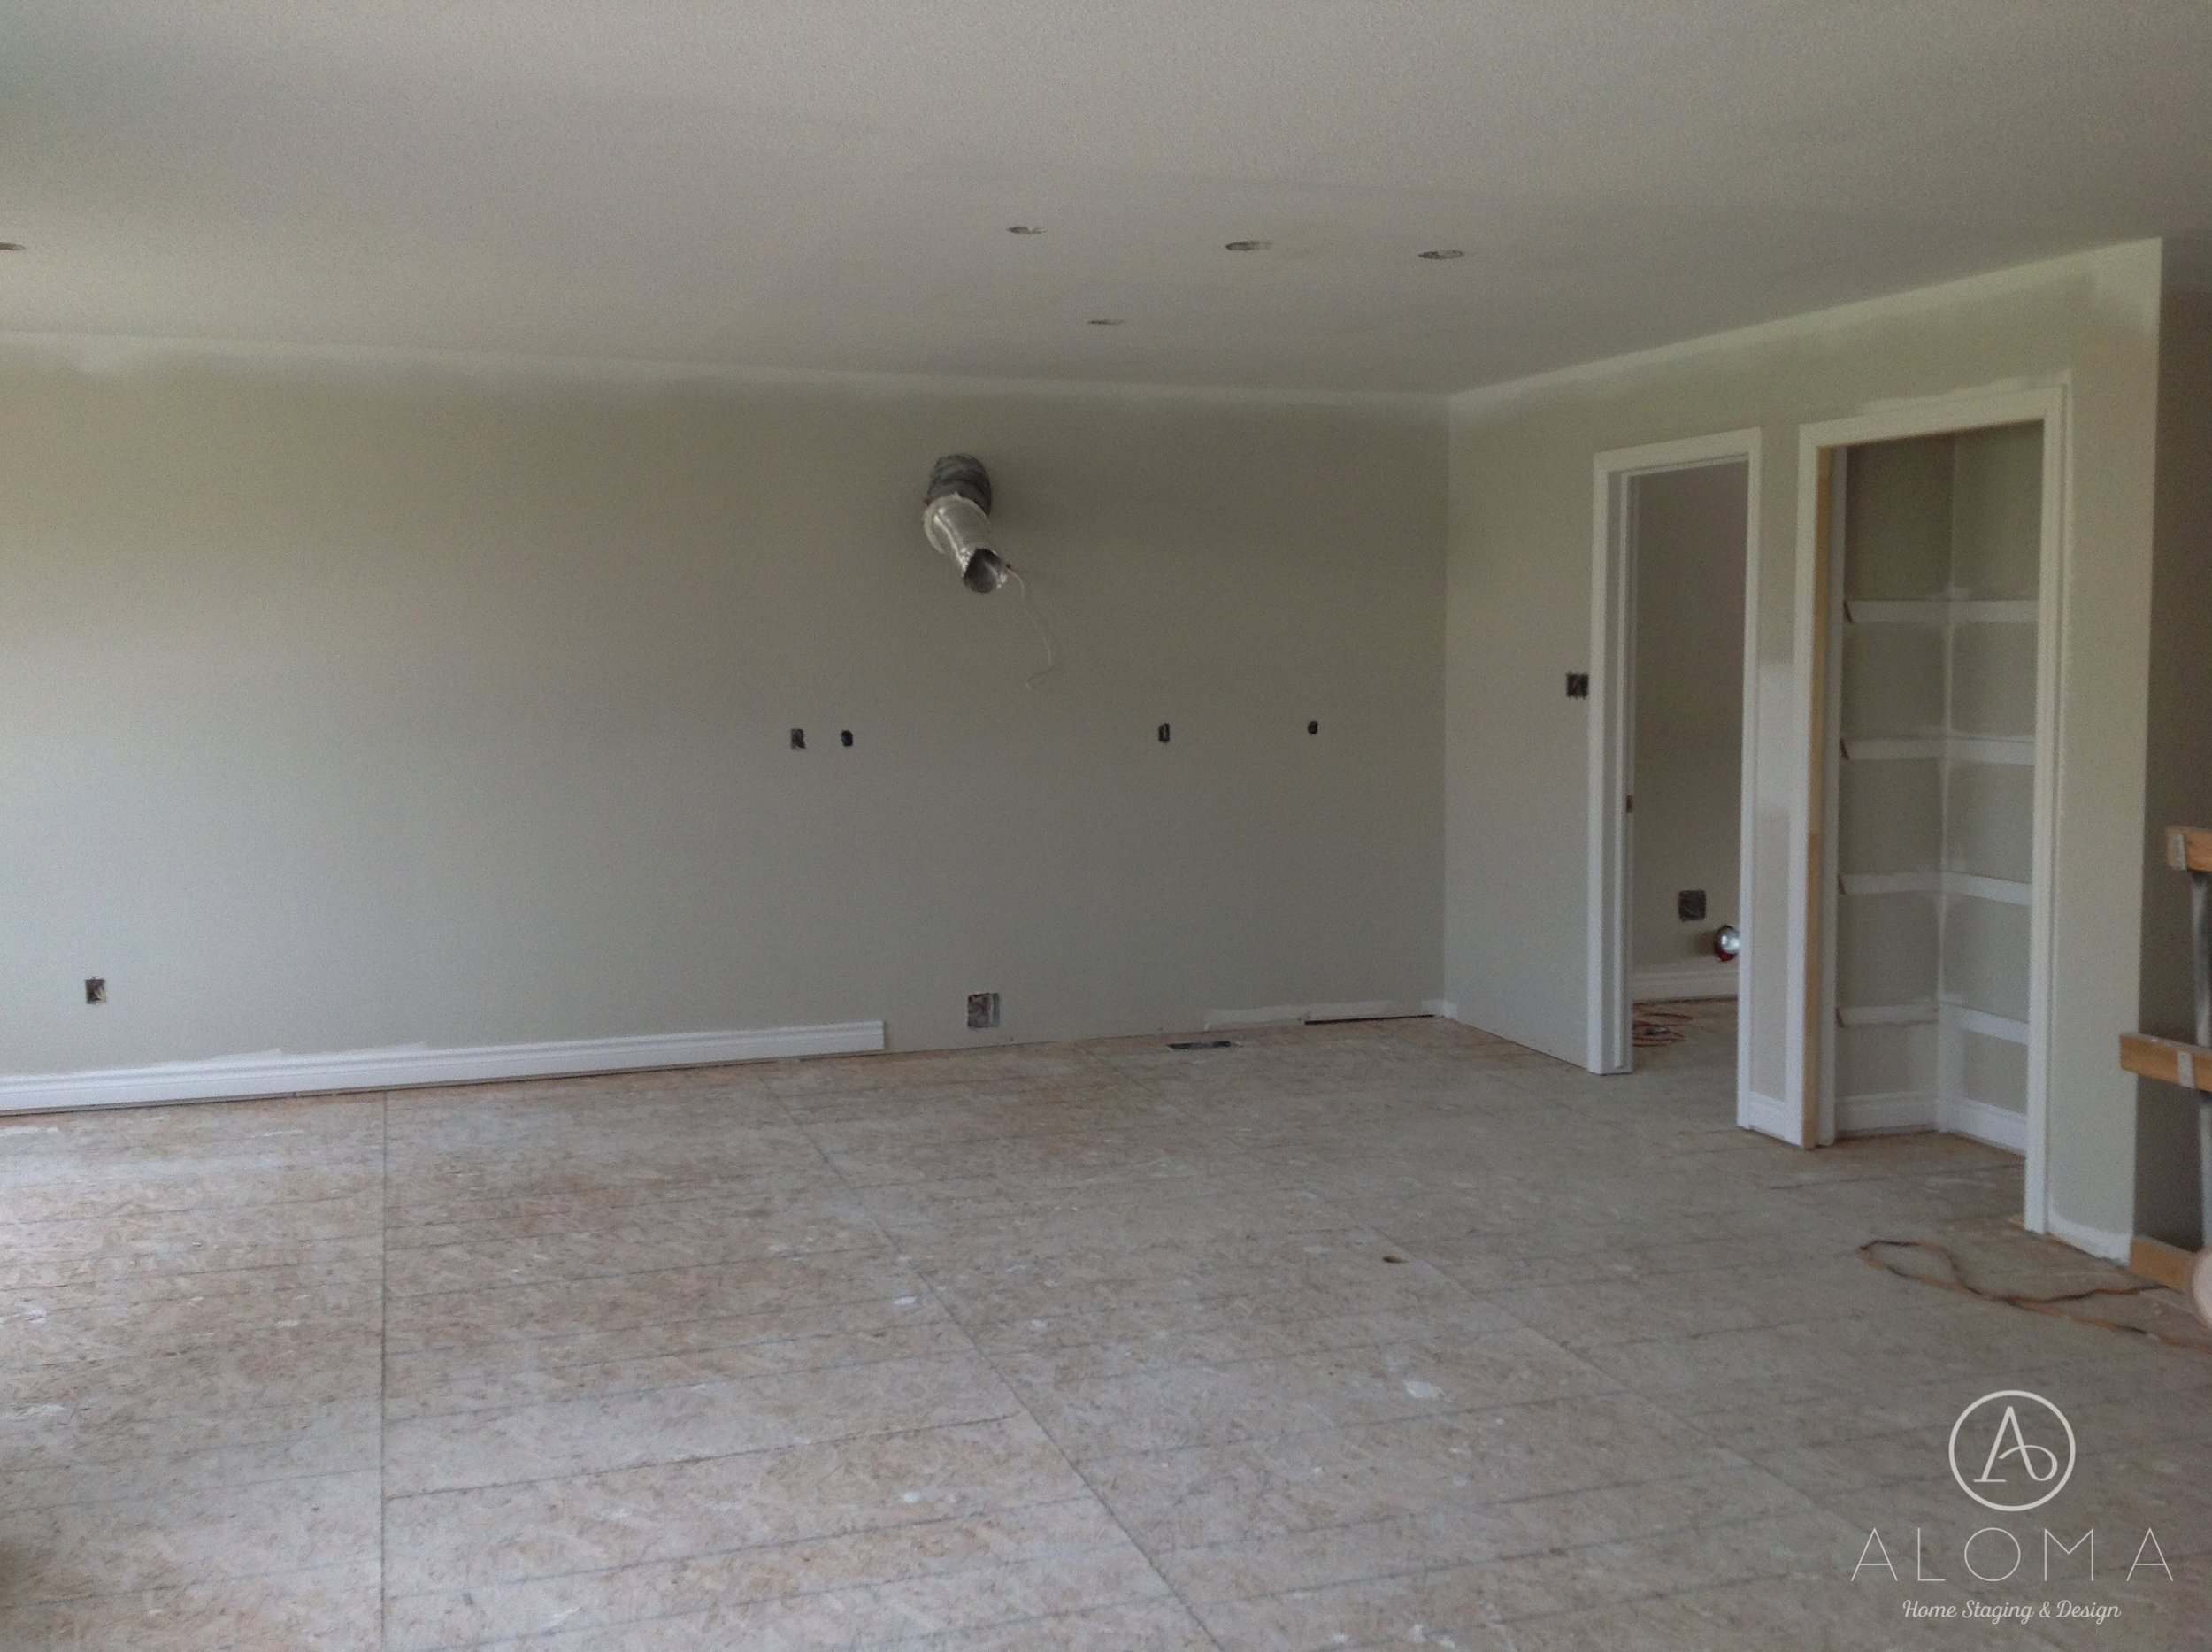 Before-Bellview house-ALOMA Home Staging & Design